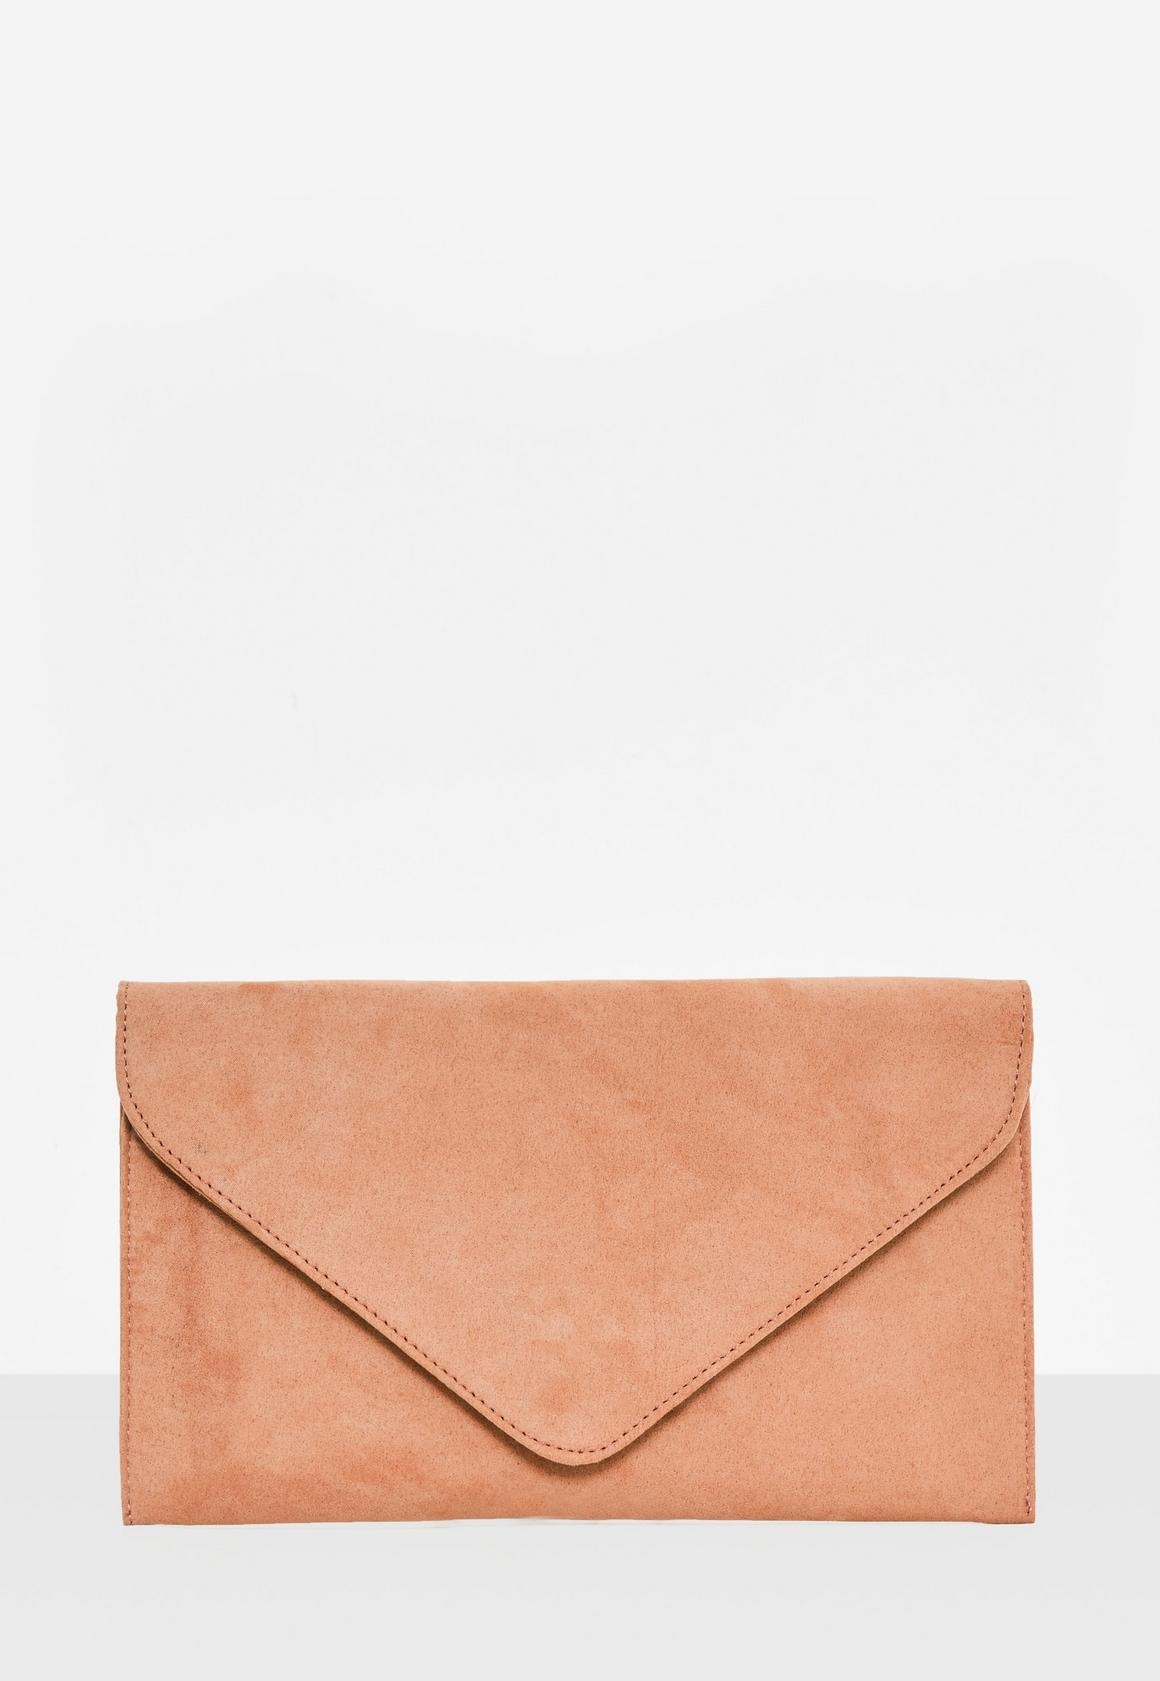 Nude Faux Suede Clutch Bag | Missguided